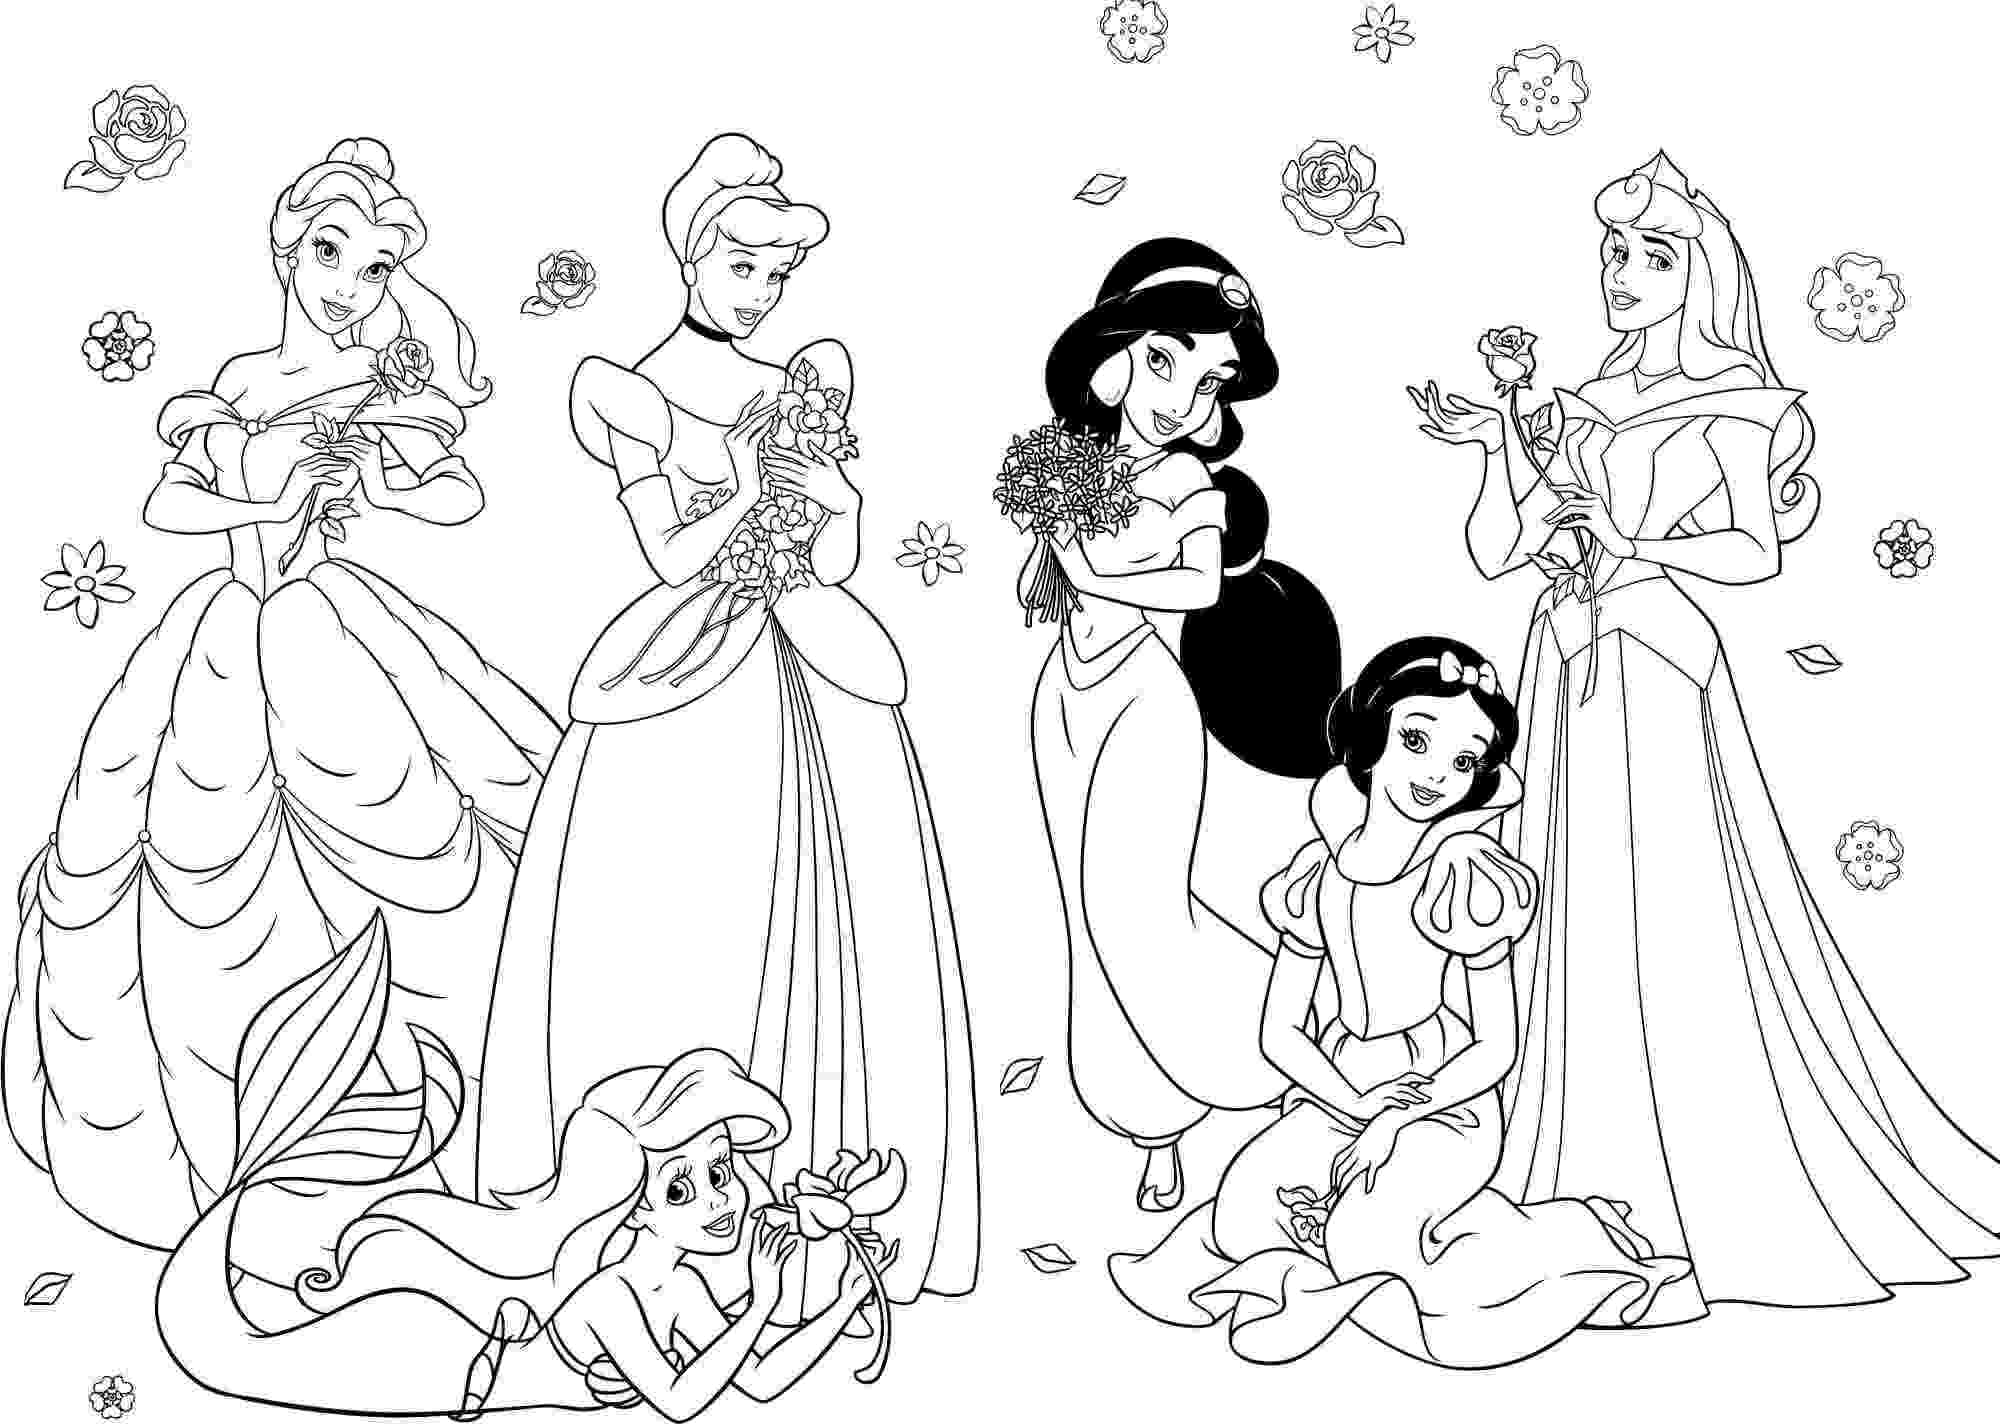 coloring pages princesses all disney princesses coloring pages getcoloringpagescom coloring pages princesses